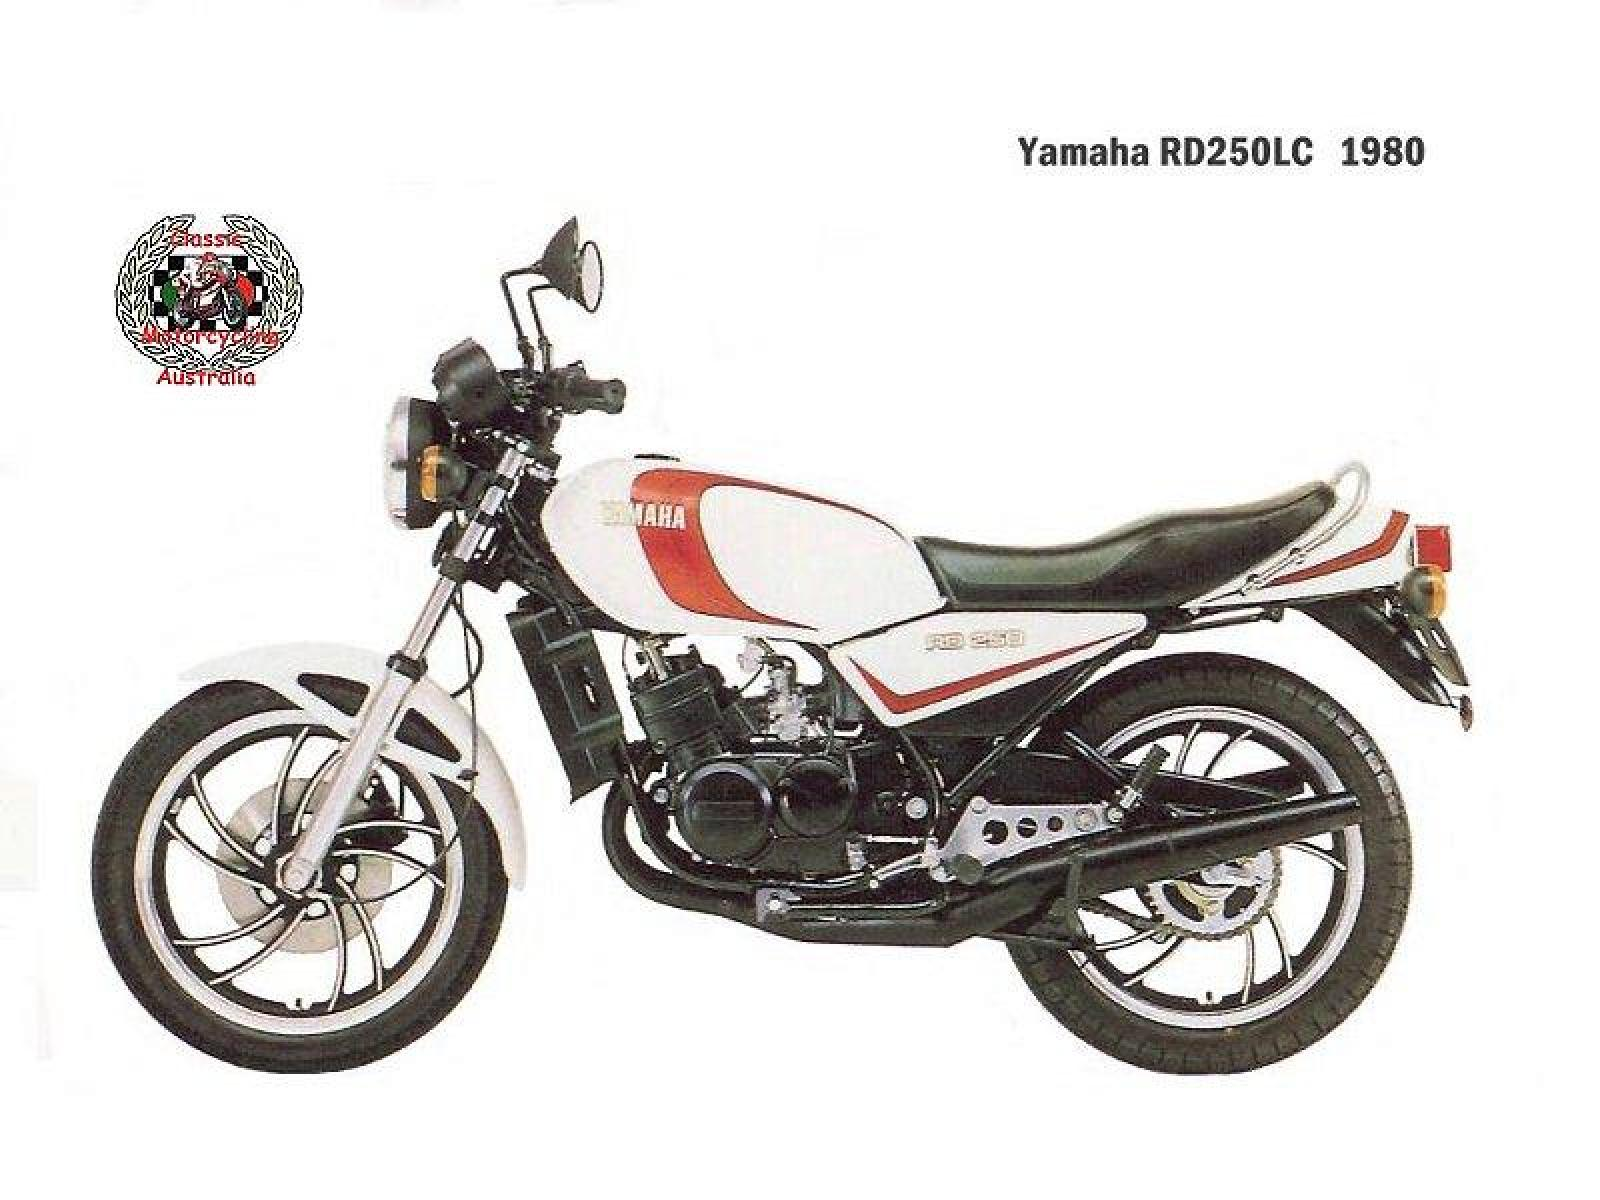 1982 Yamaha RD 250 LC (reduced effect) #2